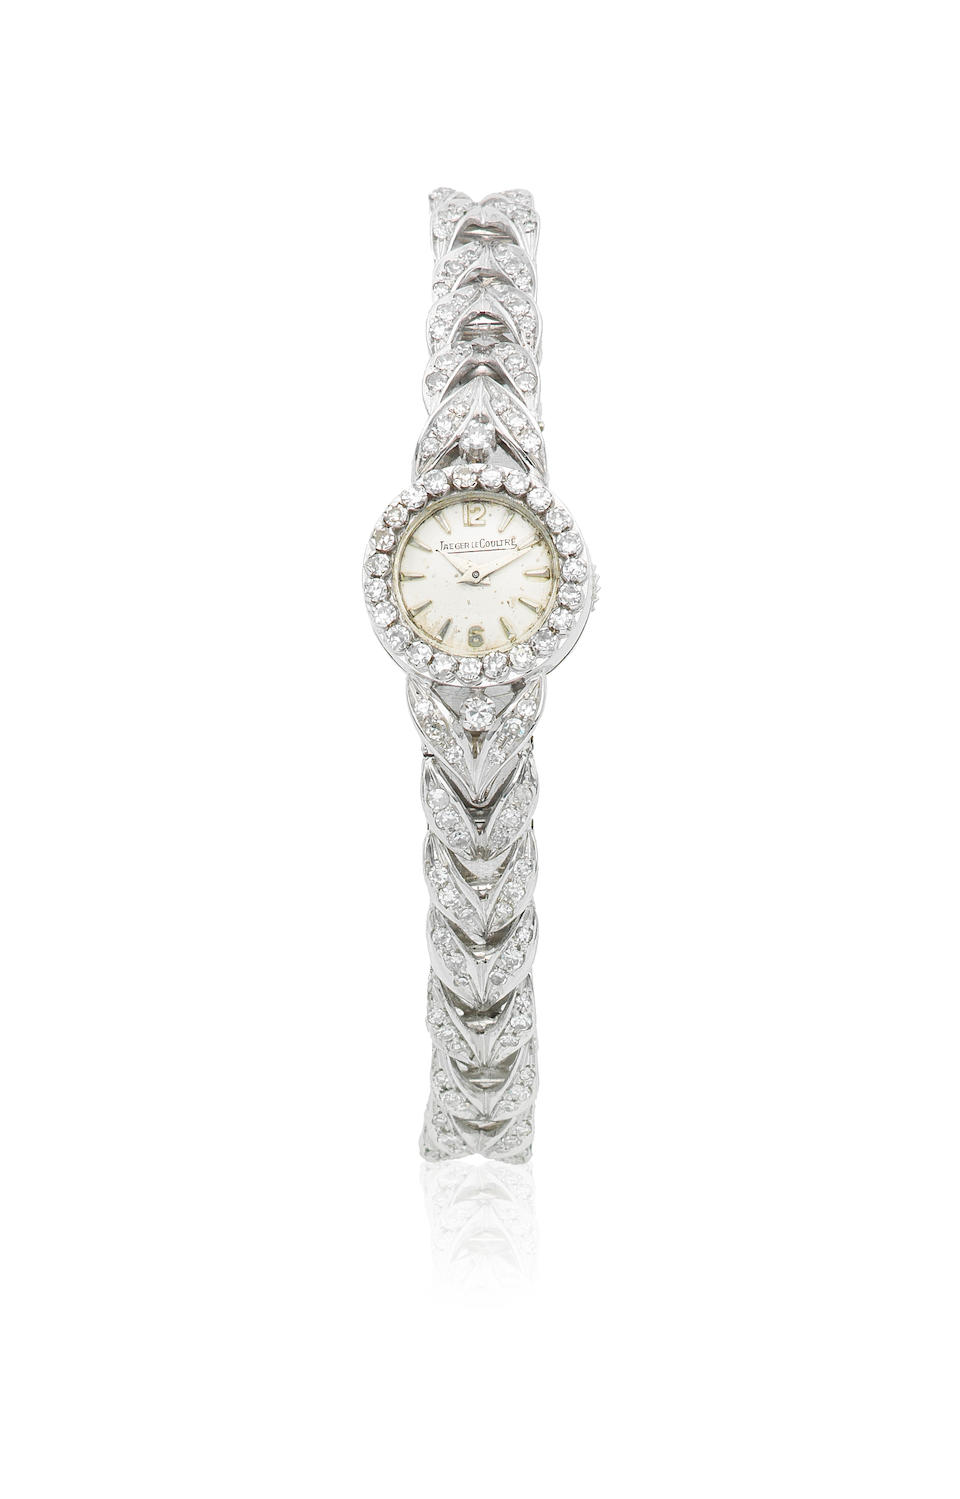 Jaeger-LeCoultre. A lady's 18K white gold and diamond set cocktail bracelet watch Circa 1959